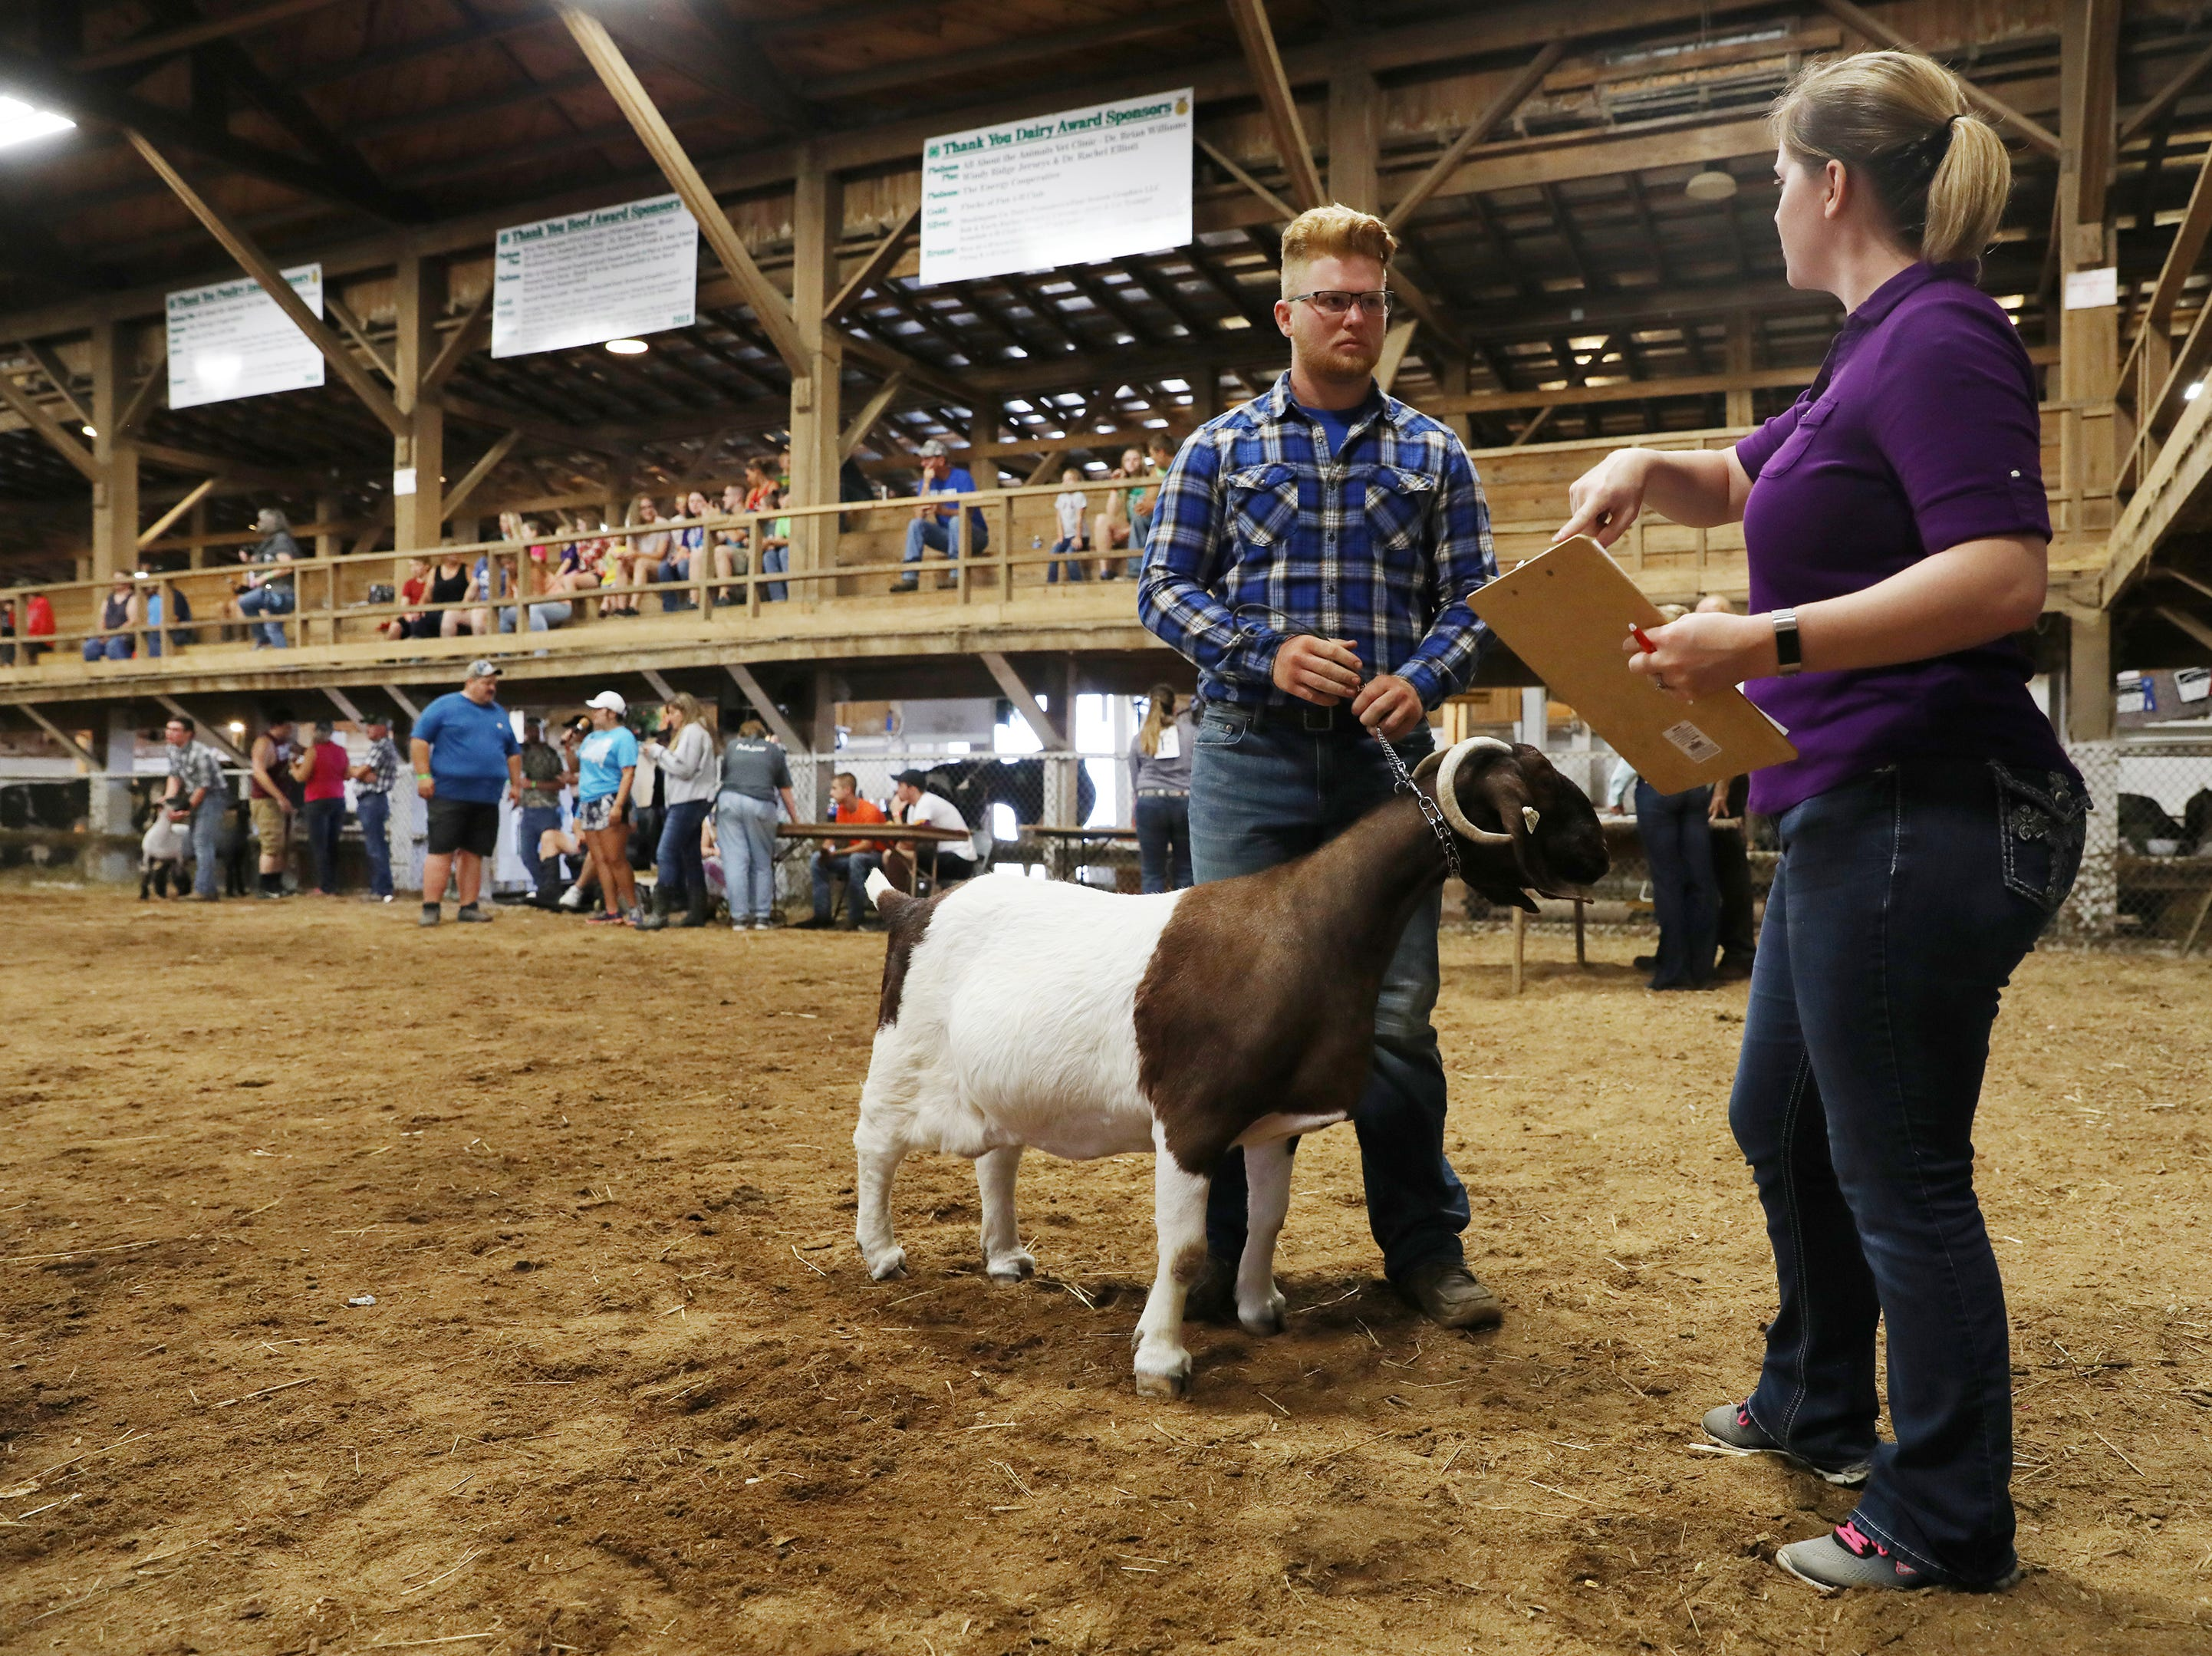 Tyler McKenzie gets ready to show a goat during the Showman of Showmen competition at the Muskingum County Fair on Friday.